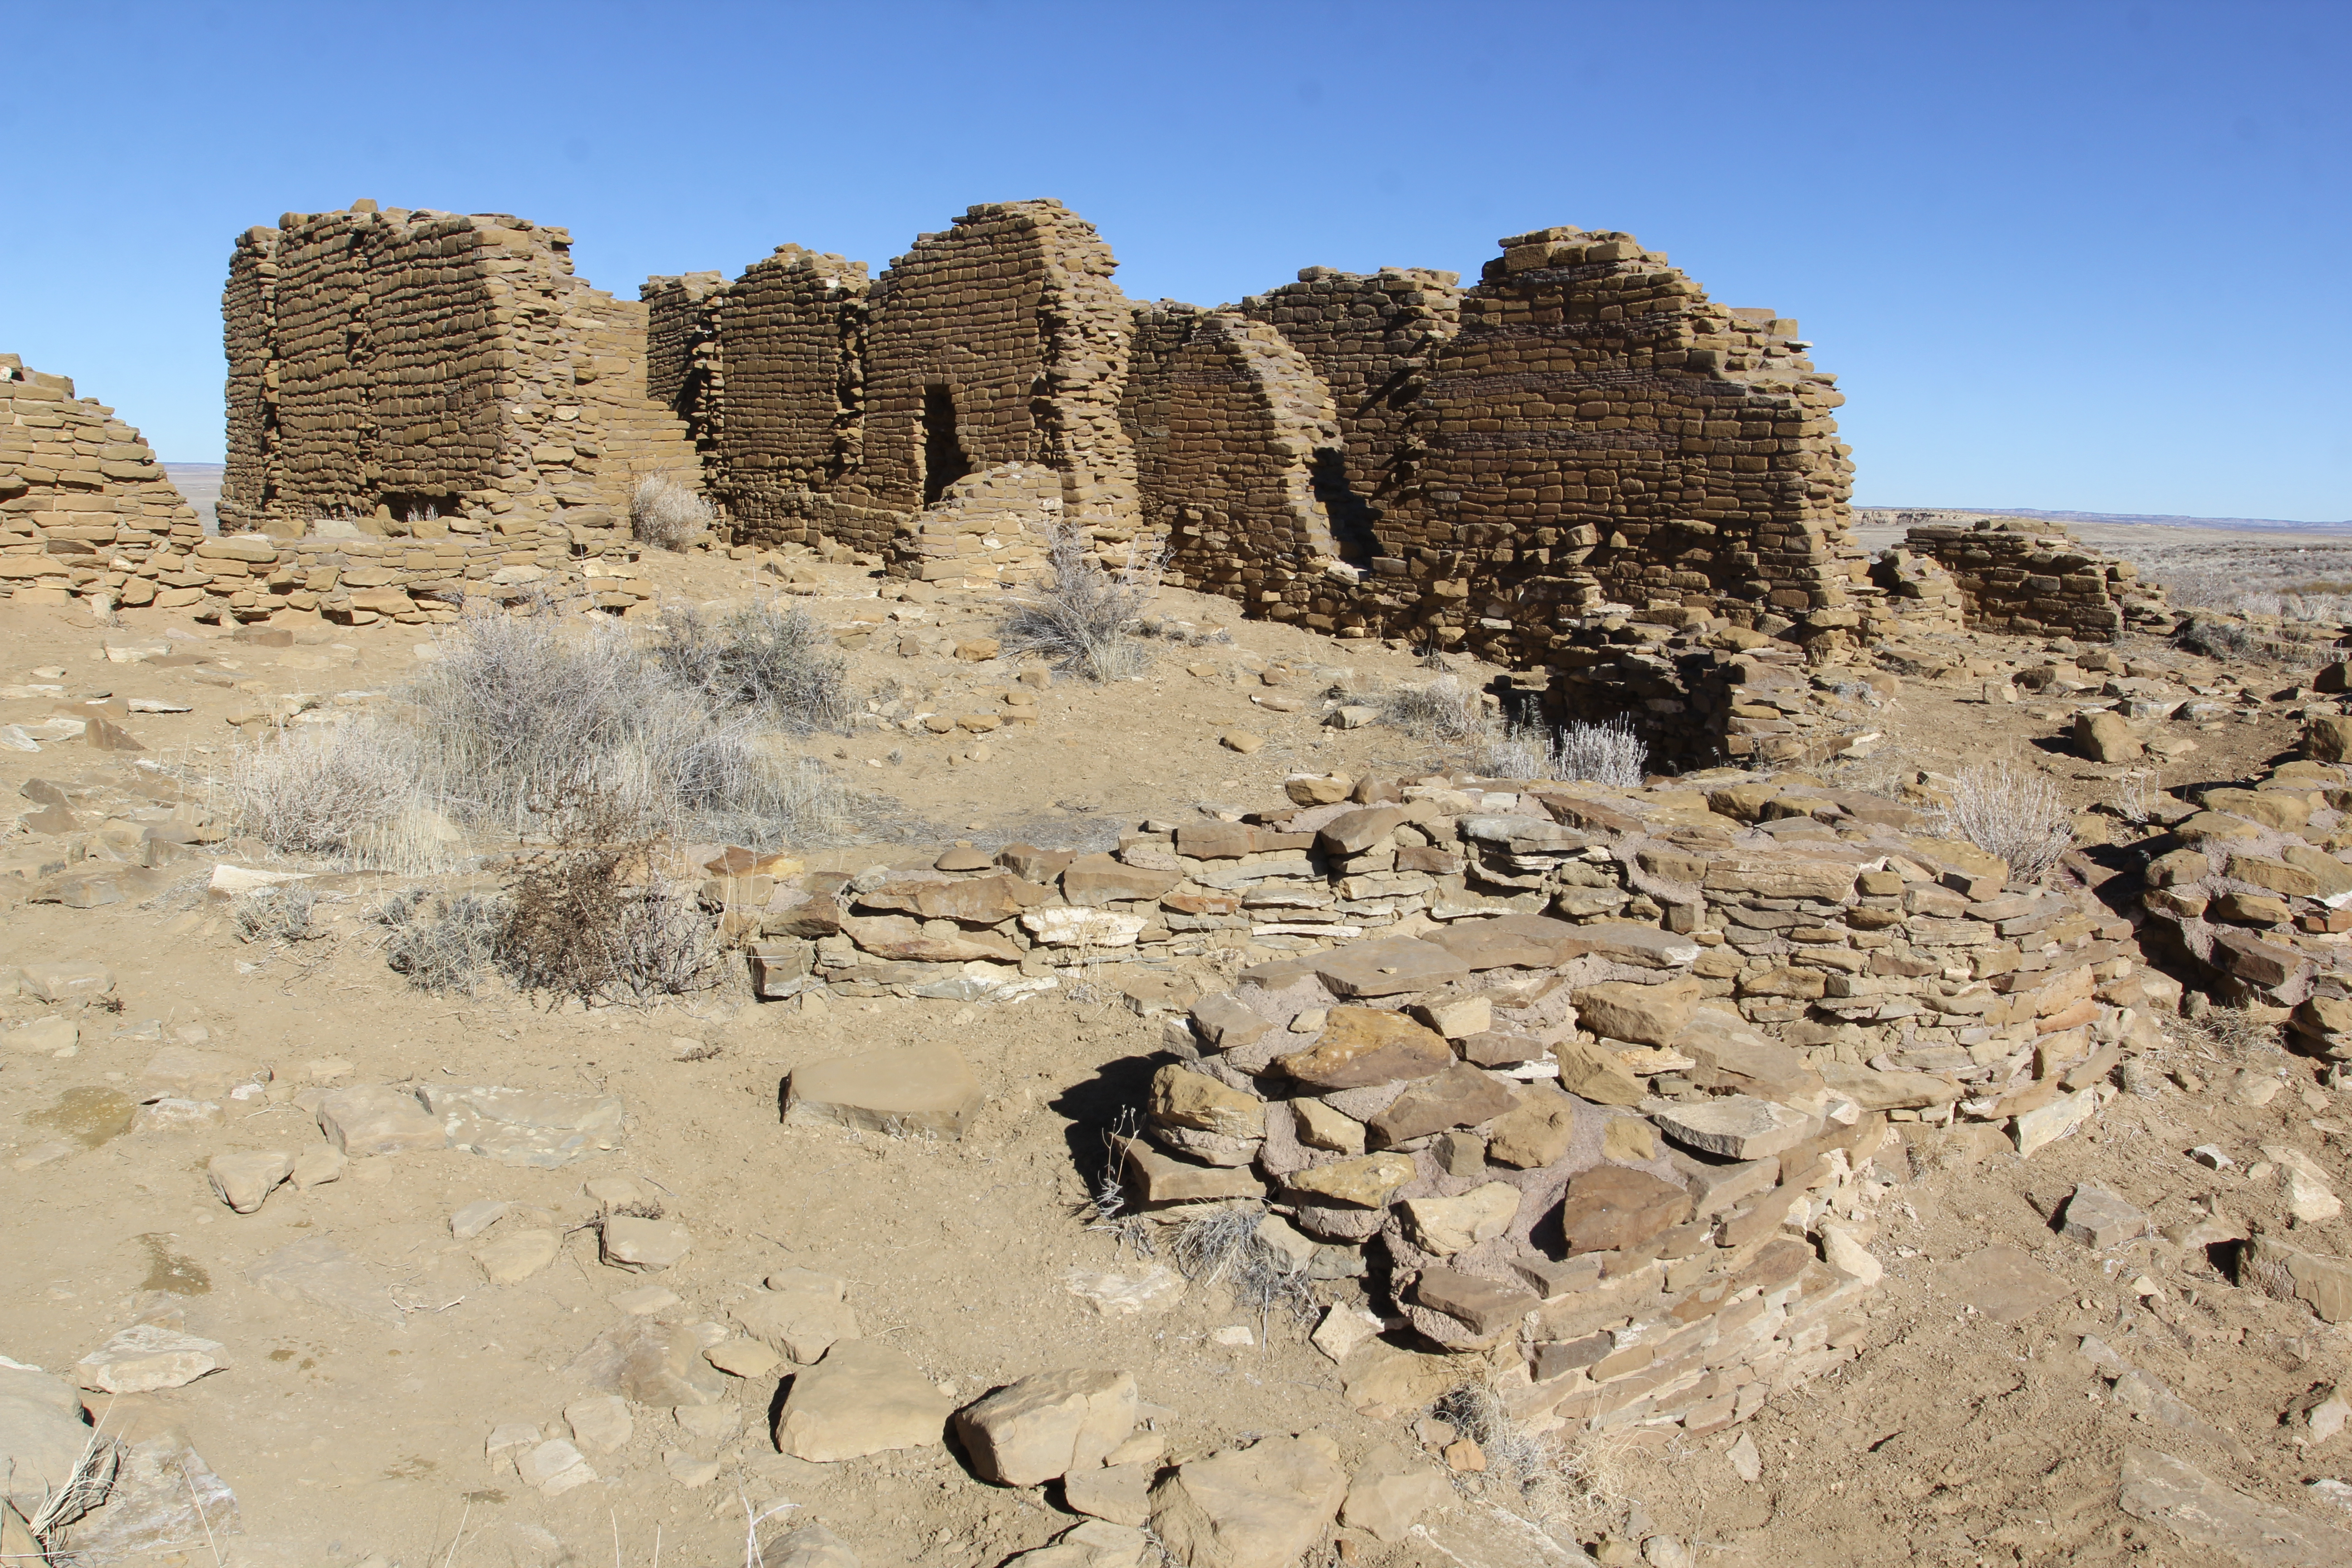 New Alto ruins at Chaco Canyon in Nageezi, NM